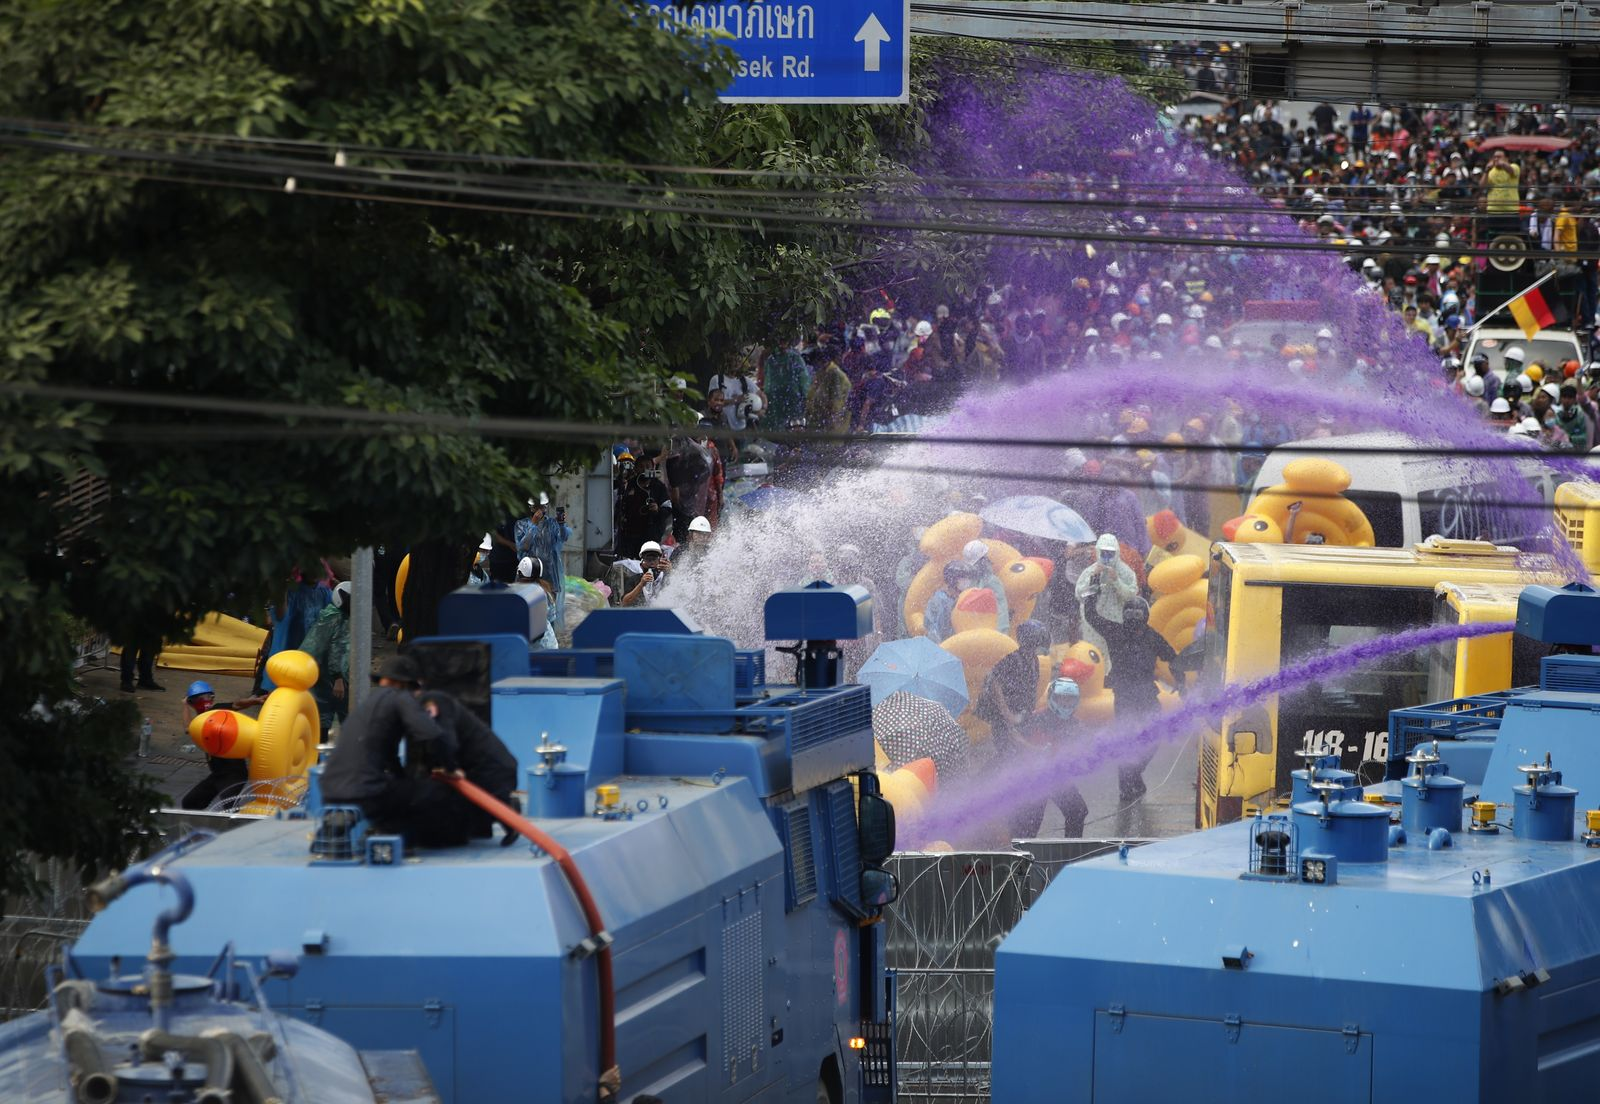 Demonstrations during parliament session over the rewrite of constitution, Bangkok, Thailand - 17 Nov 2020